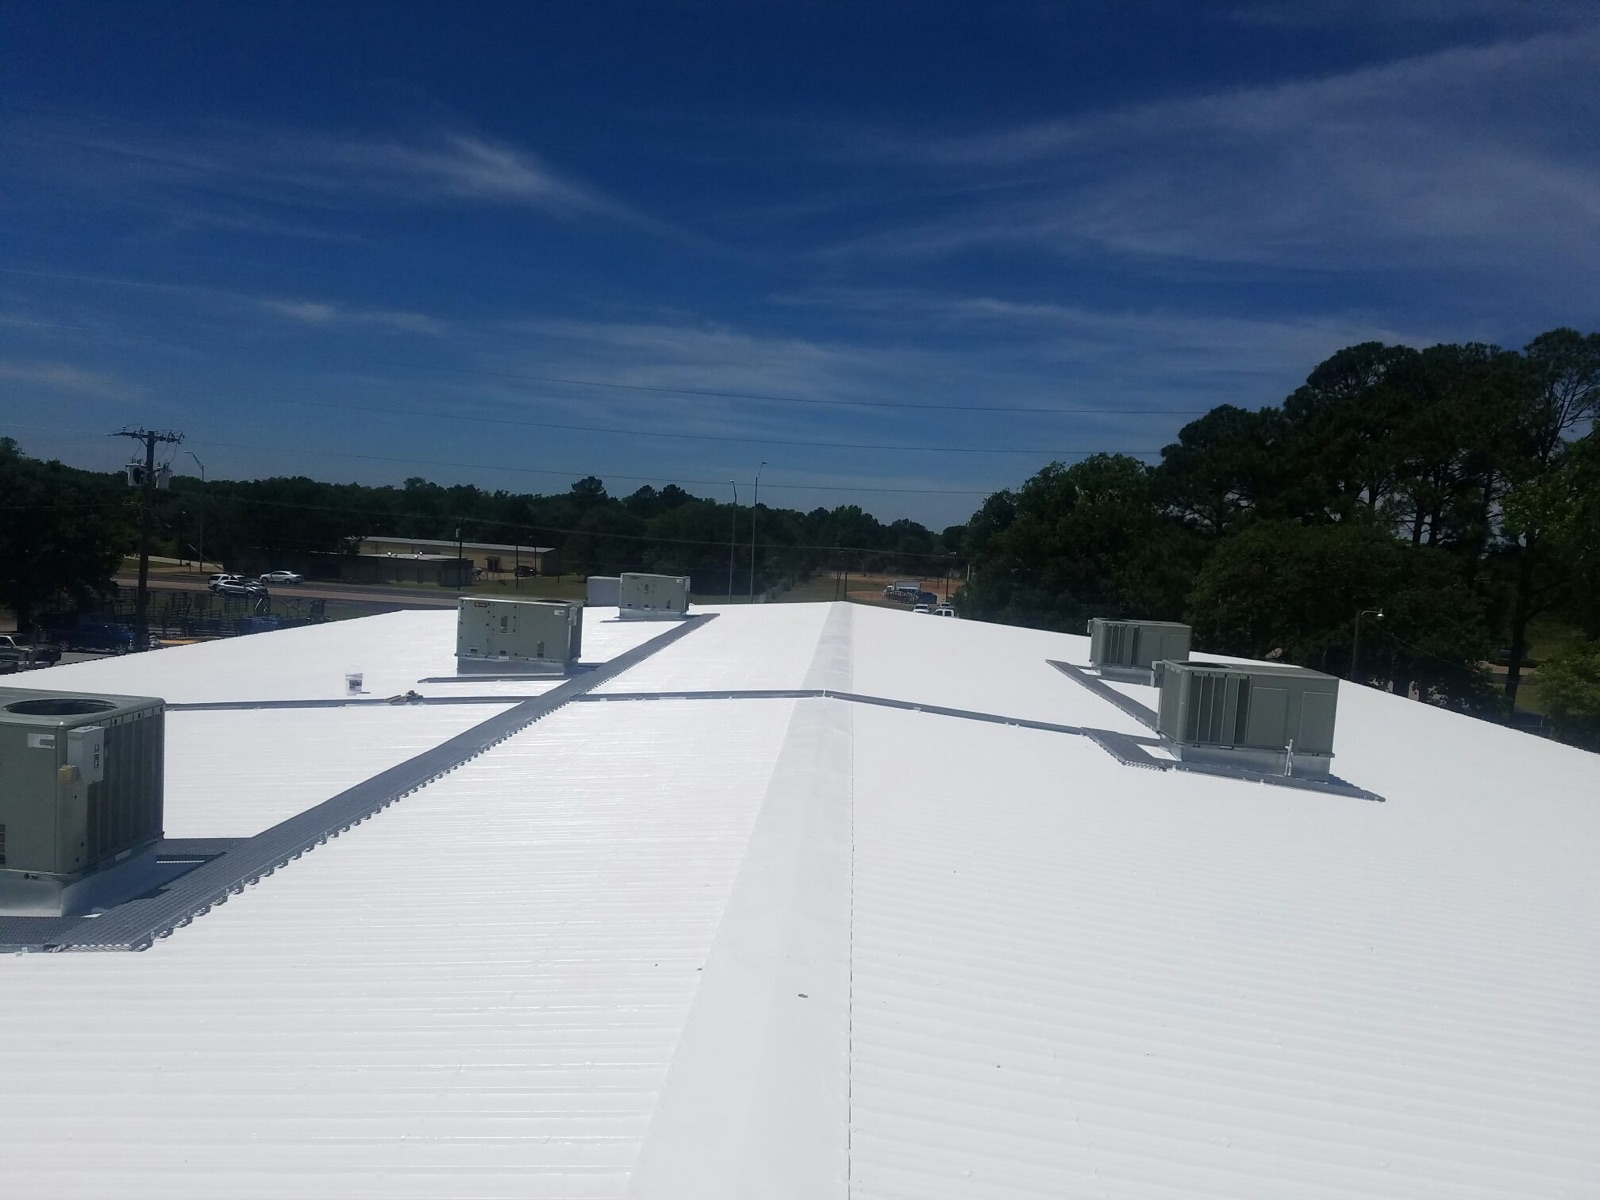 Miami Roofing Company Have Years Of Experience In Repair